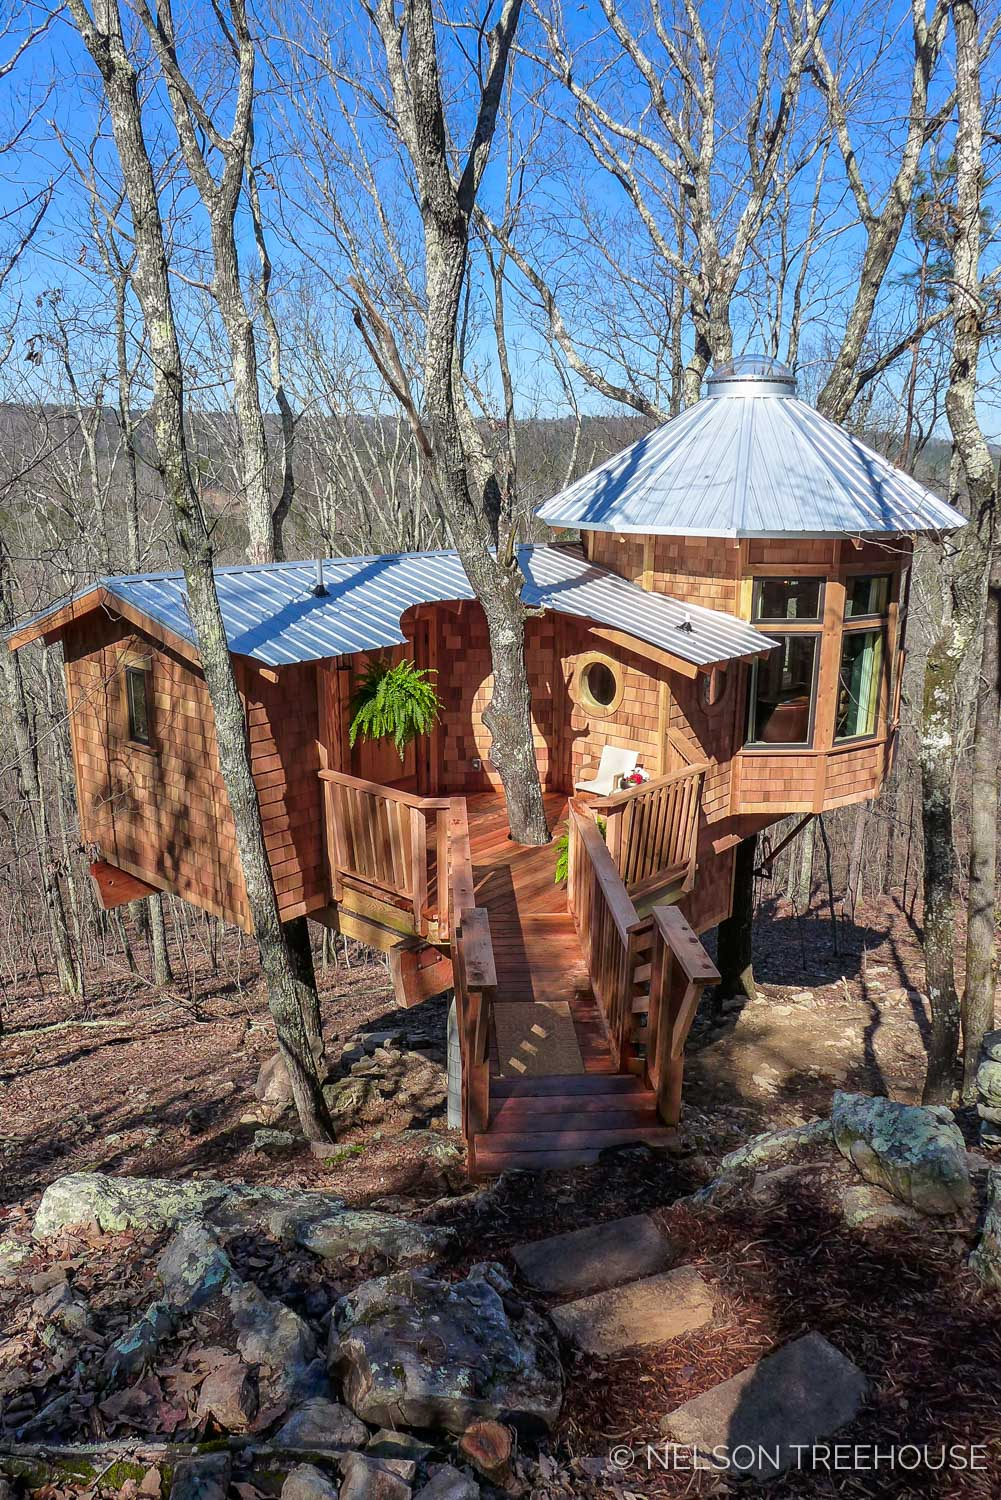 Super Spy Treehouse - Nelson Treehouse 2018 - Front Walkway